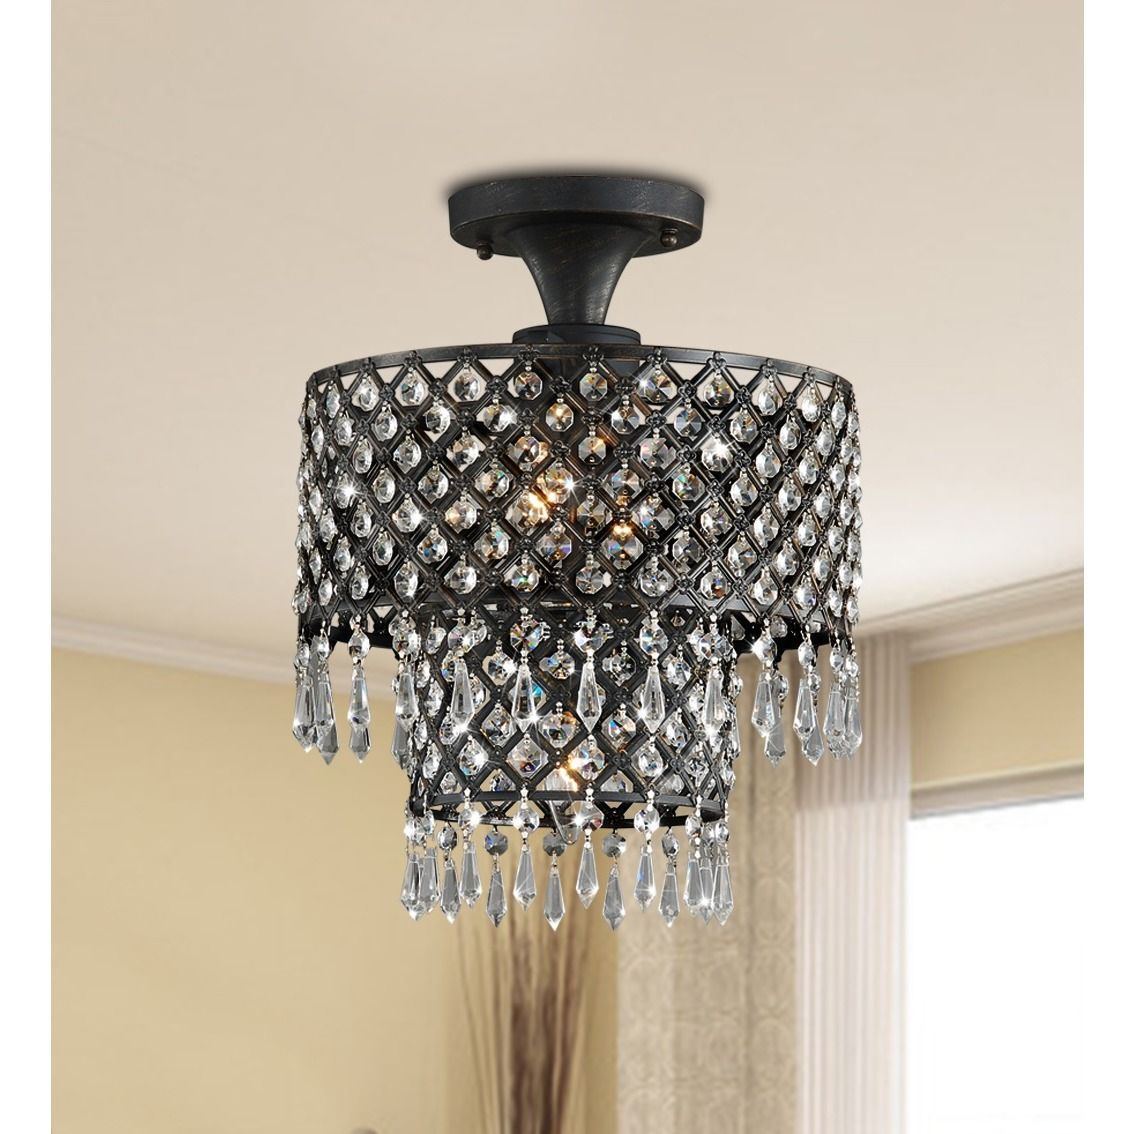 Give Your Home A Dramatic Feature With This Bronze Finished Flush Mount Crystal Chandelier Striking Piece Of Elegance That Will Transform Any Room